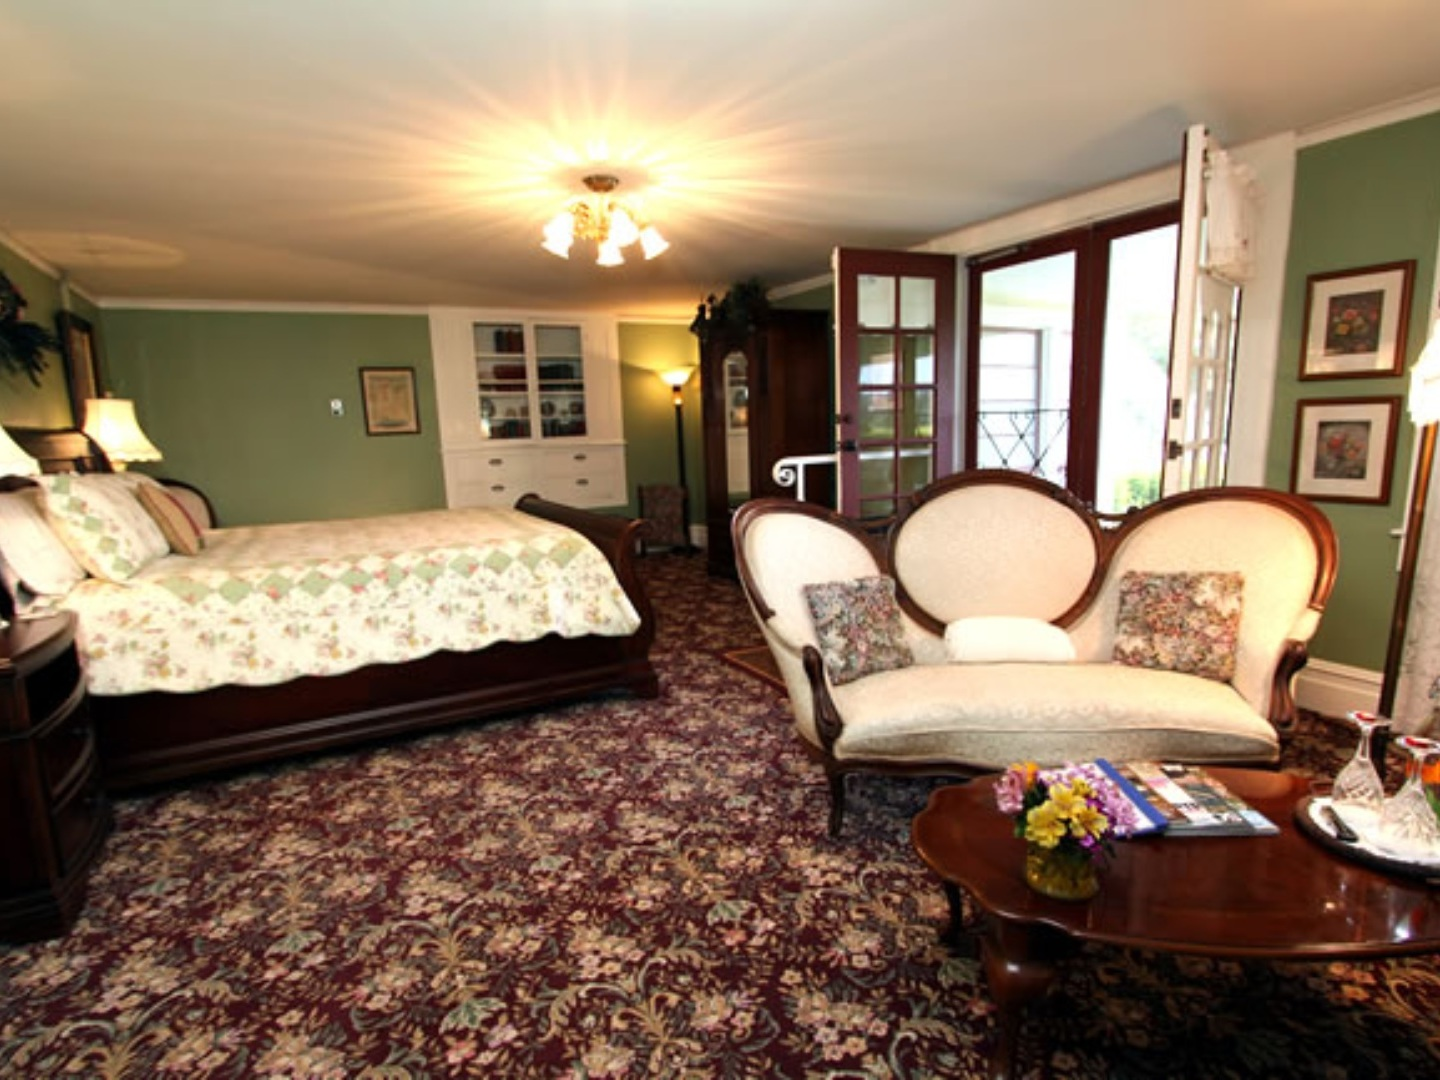 A living room filled with furniture and a flat screen tv at Raford Inn.